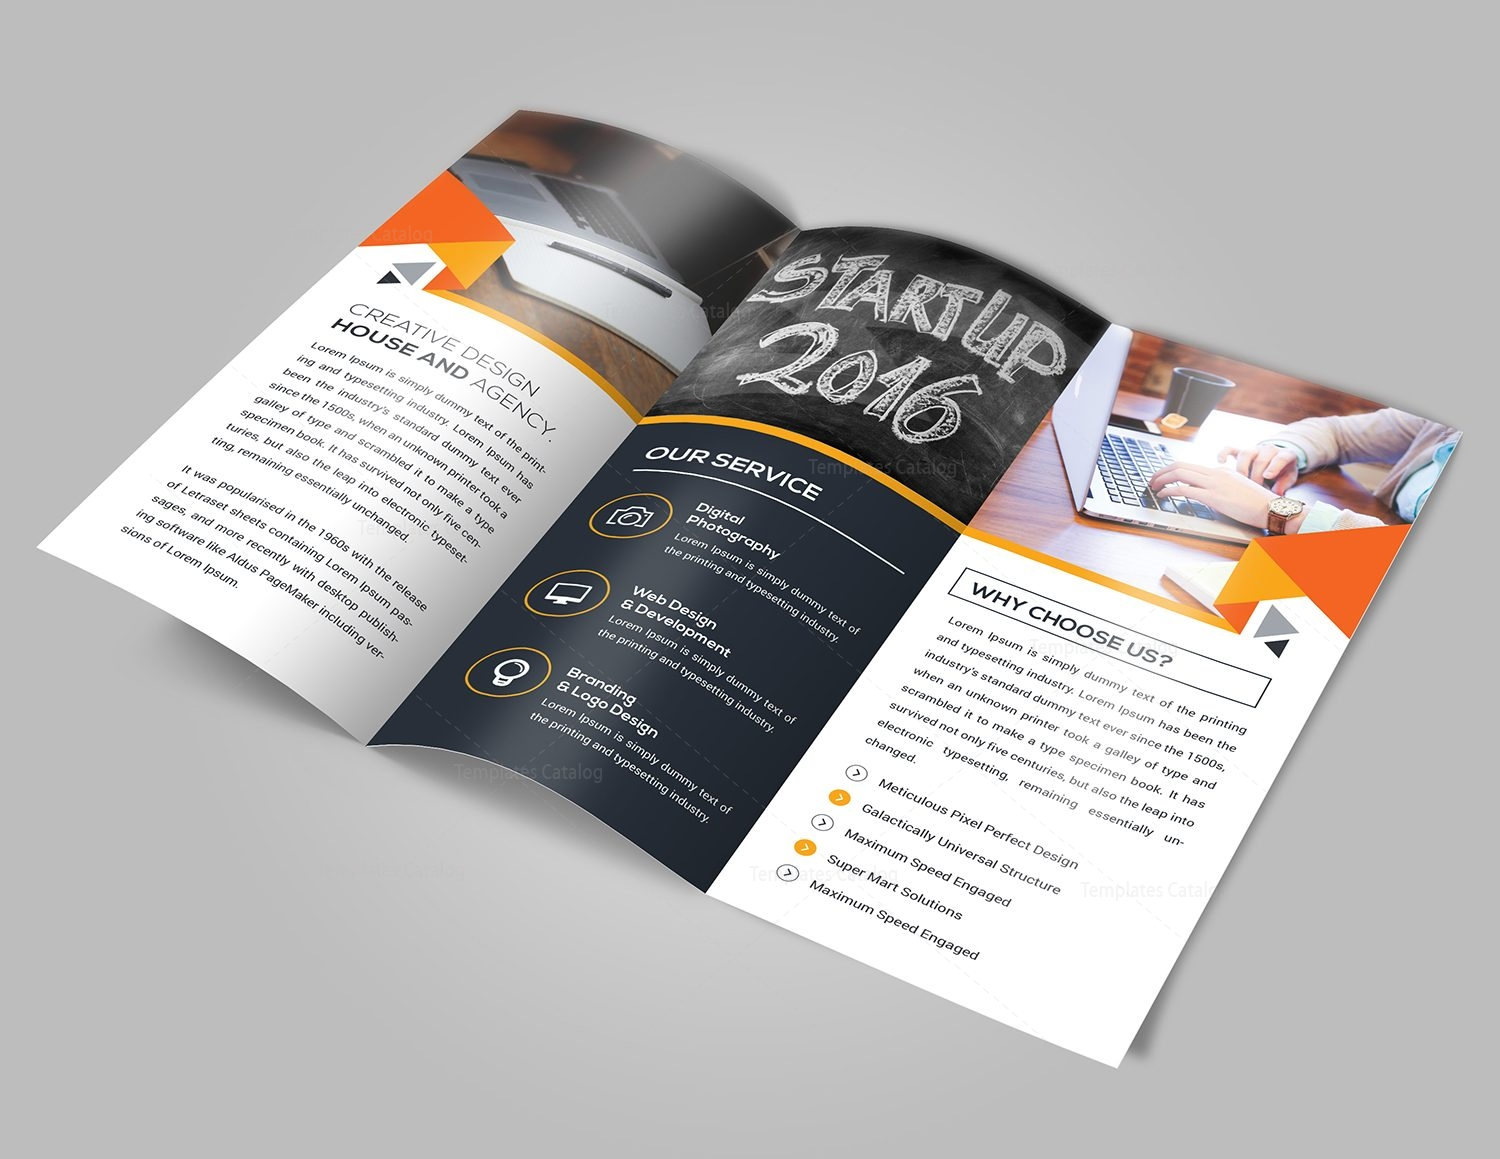 images for idea new brochure